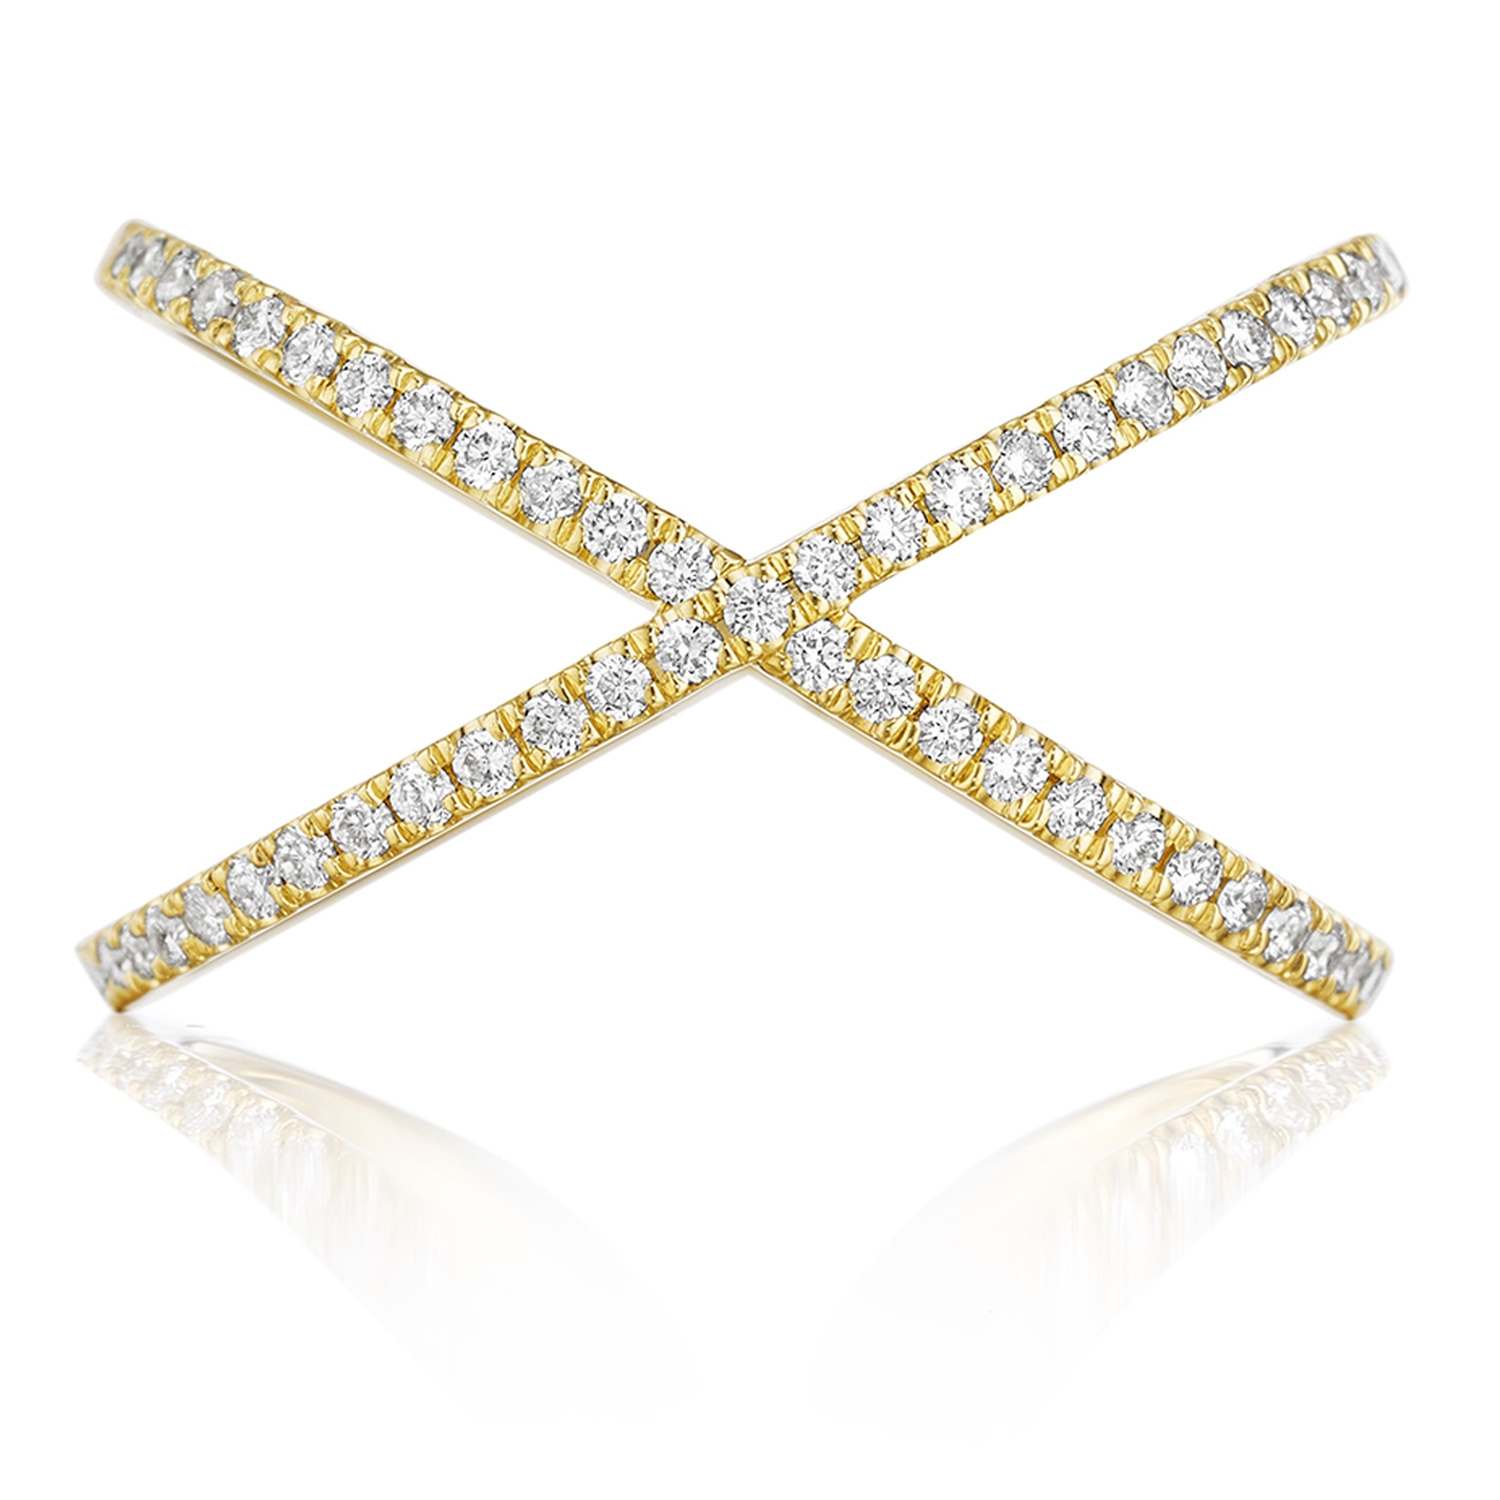 Henri Daussi R38 3 Yellow Gold Criss Cross Pave Set Diamond Band